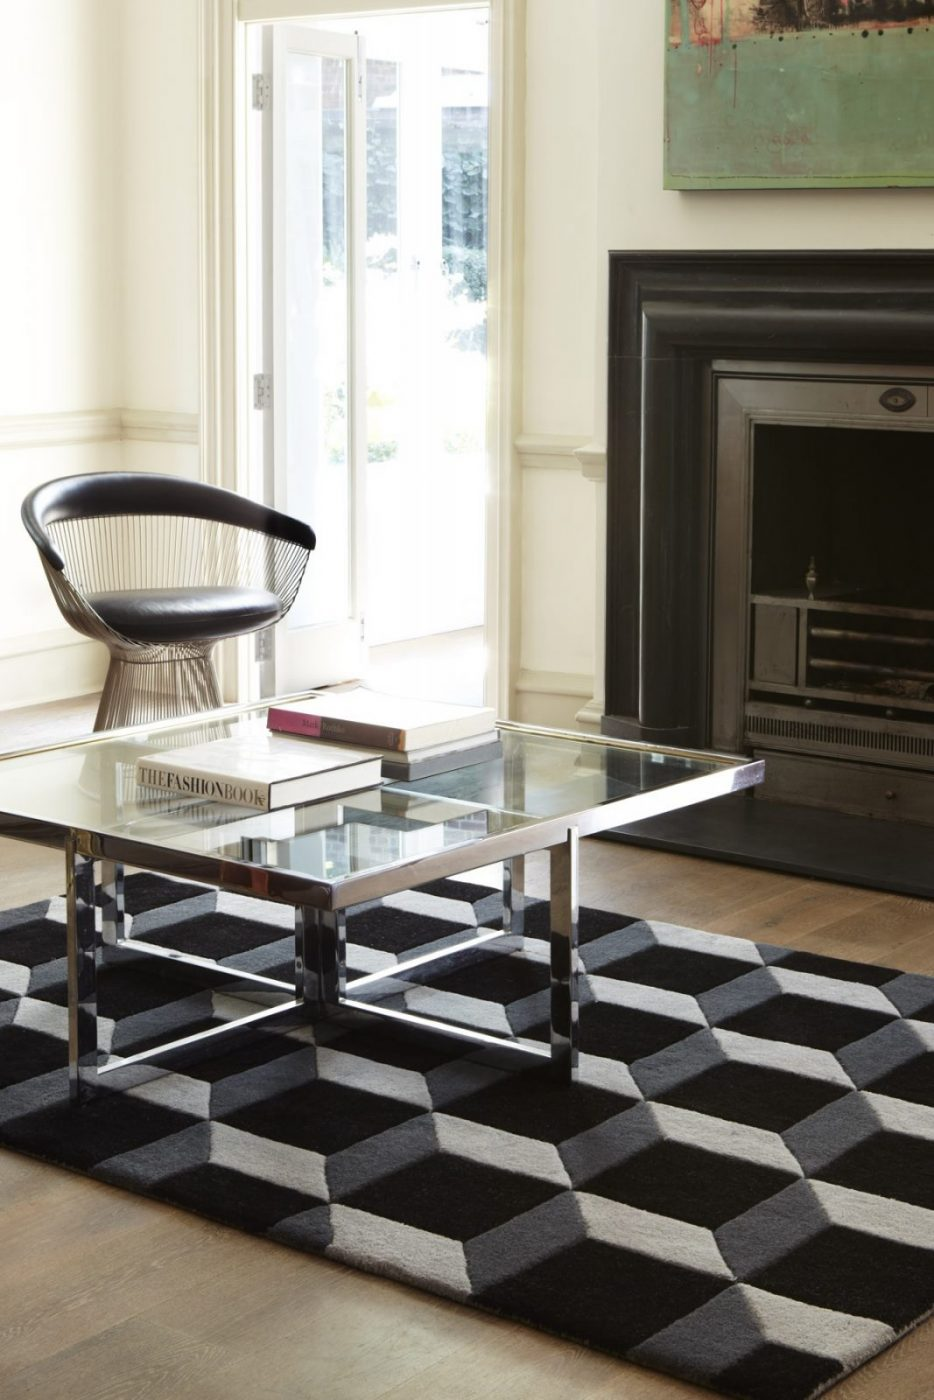 Geometric GEO04 | Plantation Rug Company | Best at Flooring